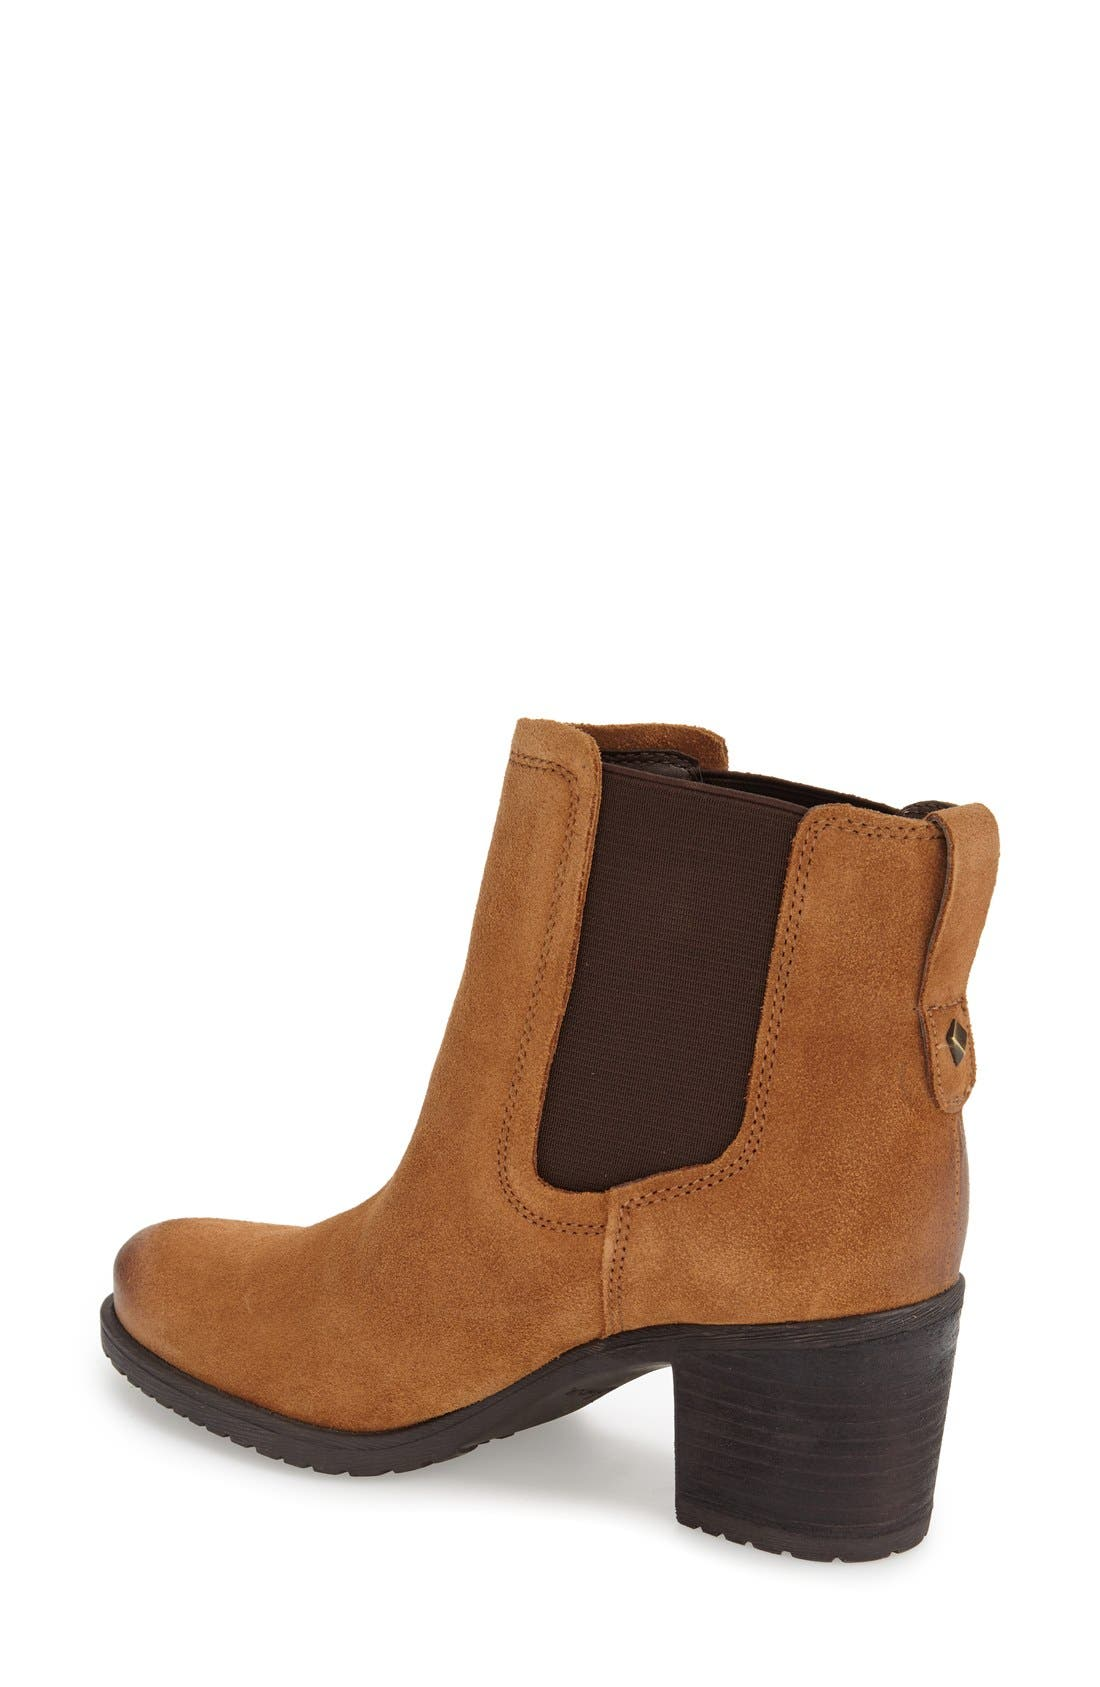 Alternate Image 2  - Sam Edelman 'Hanley' Suede Chelsea Boot (Women)